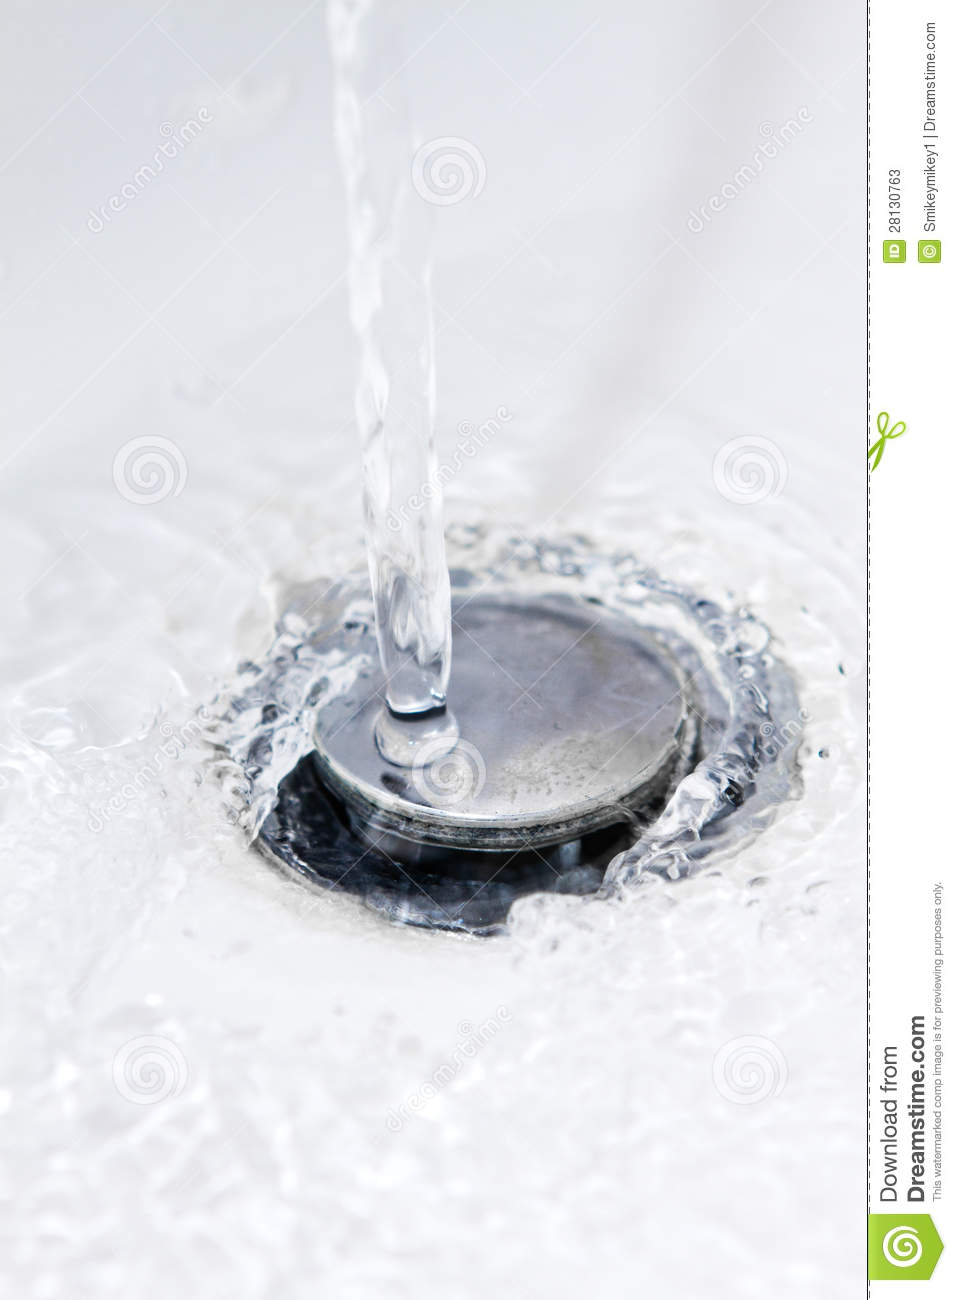 Water Running Down A Bathroom Sink Plug Hole Stock Photos